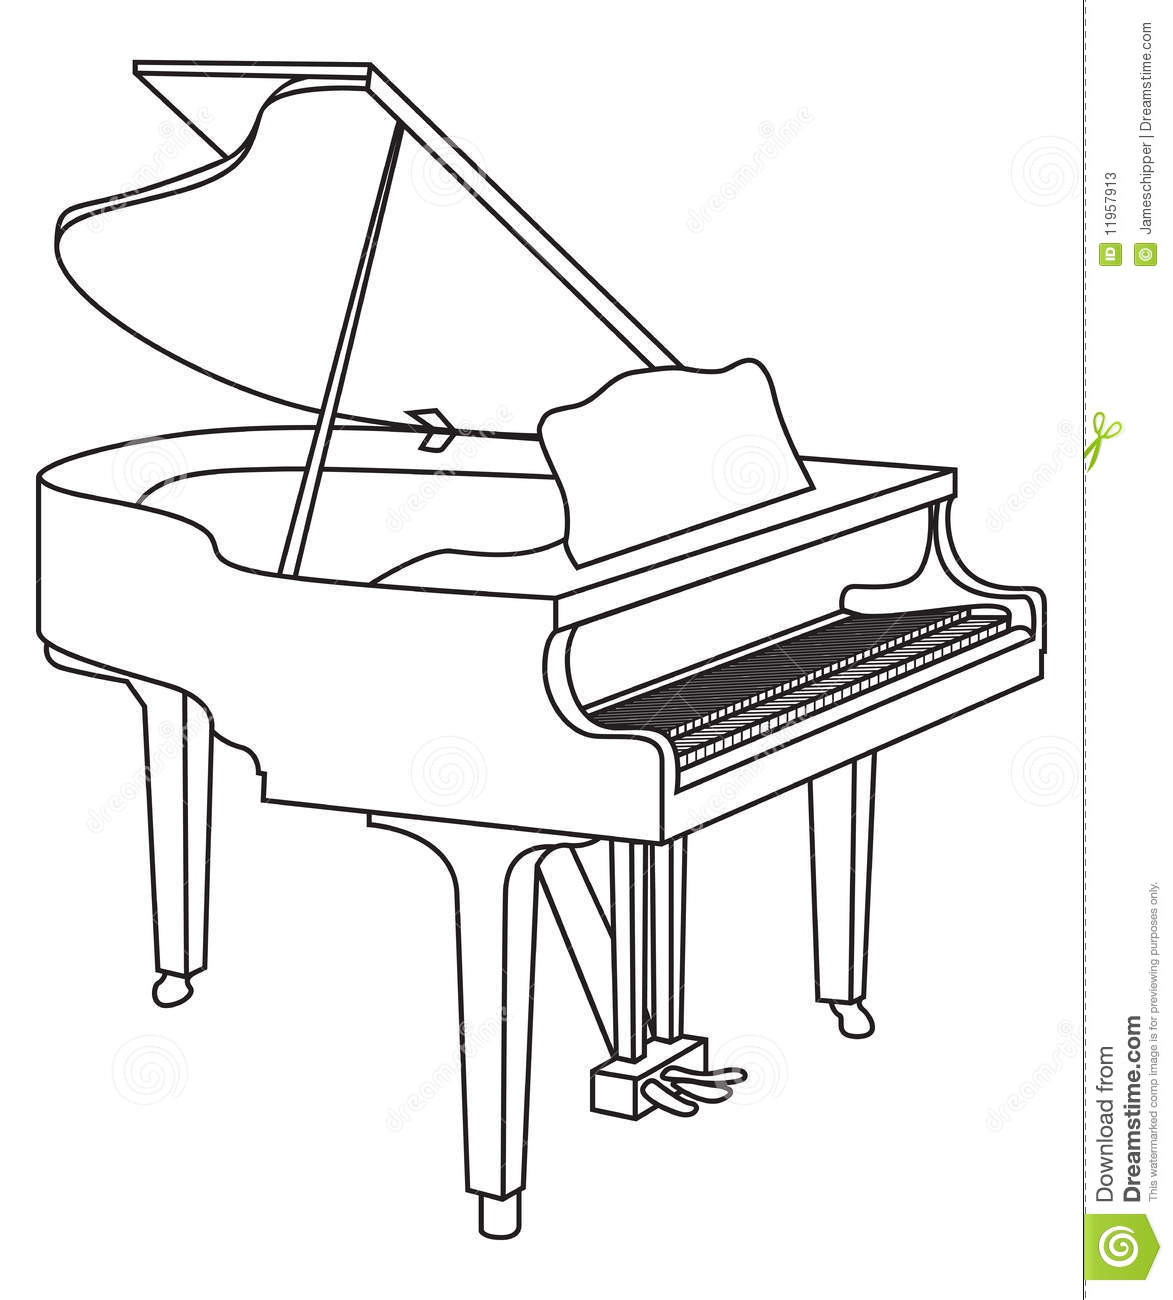 Image Result For Grand Piano Prices